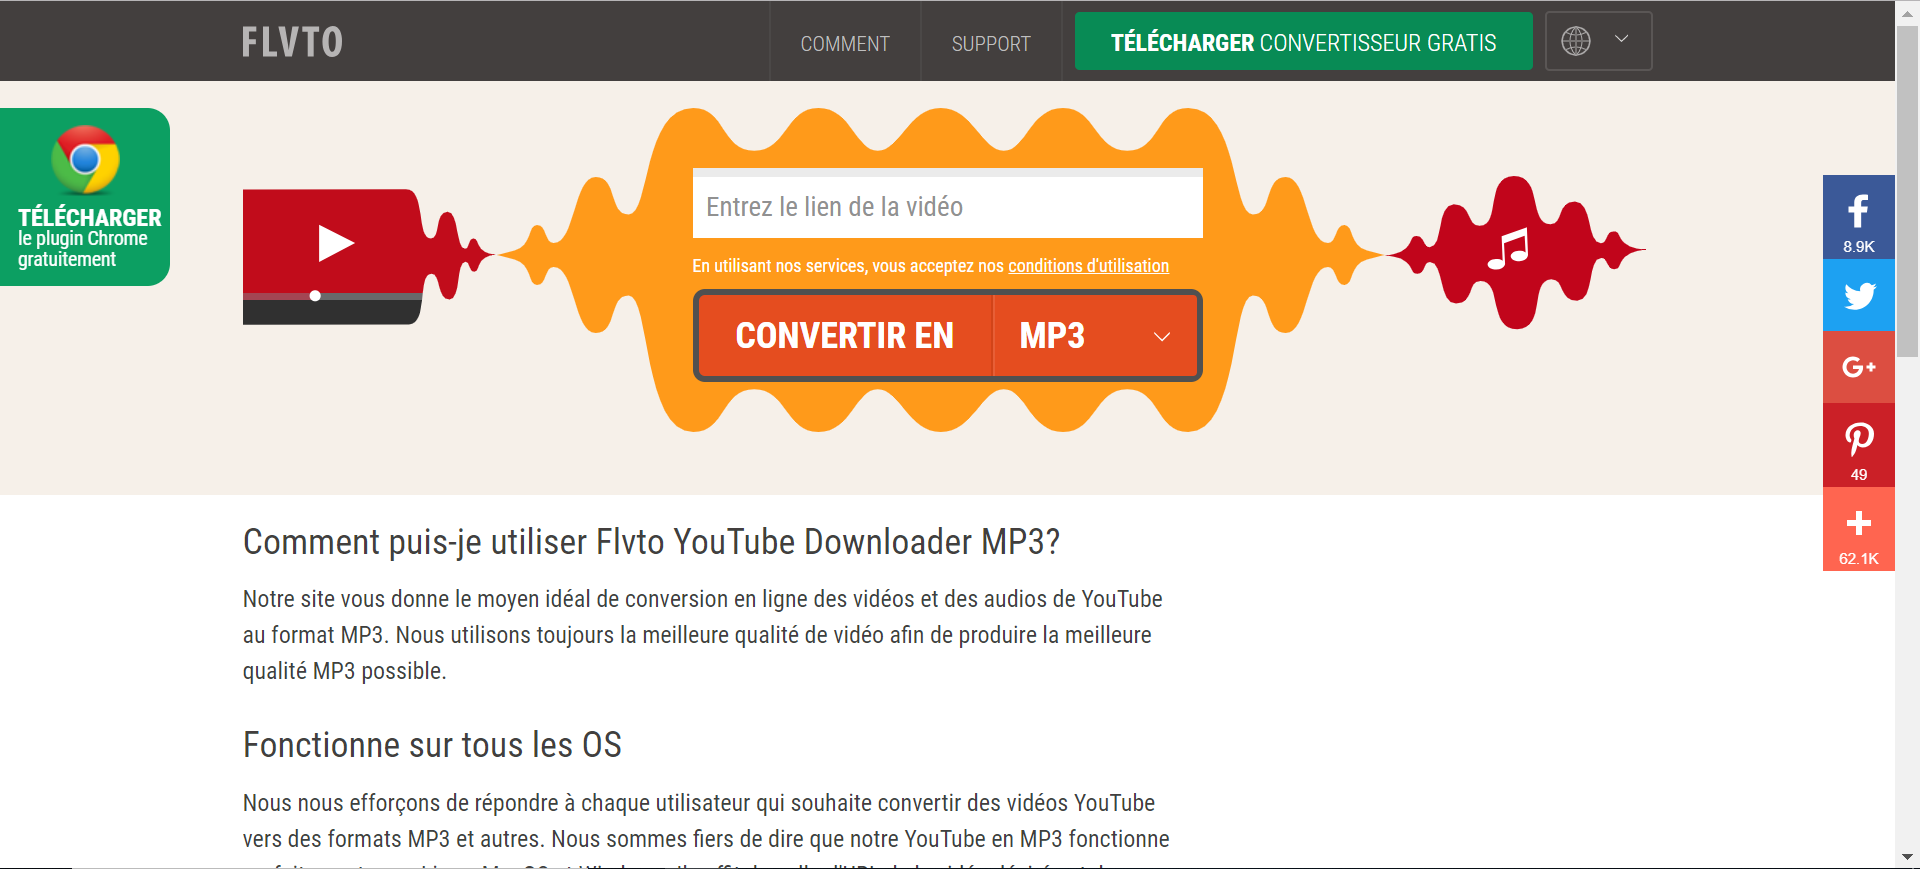 FLVTO-youtube-downloader-MP3